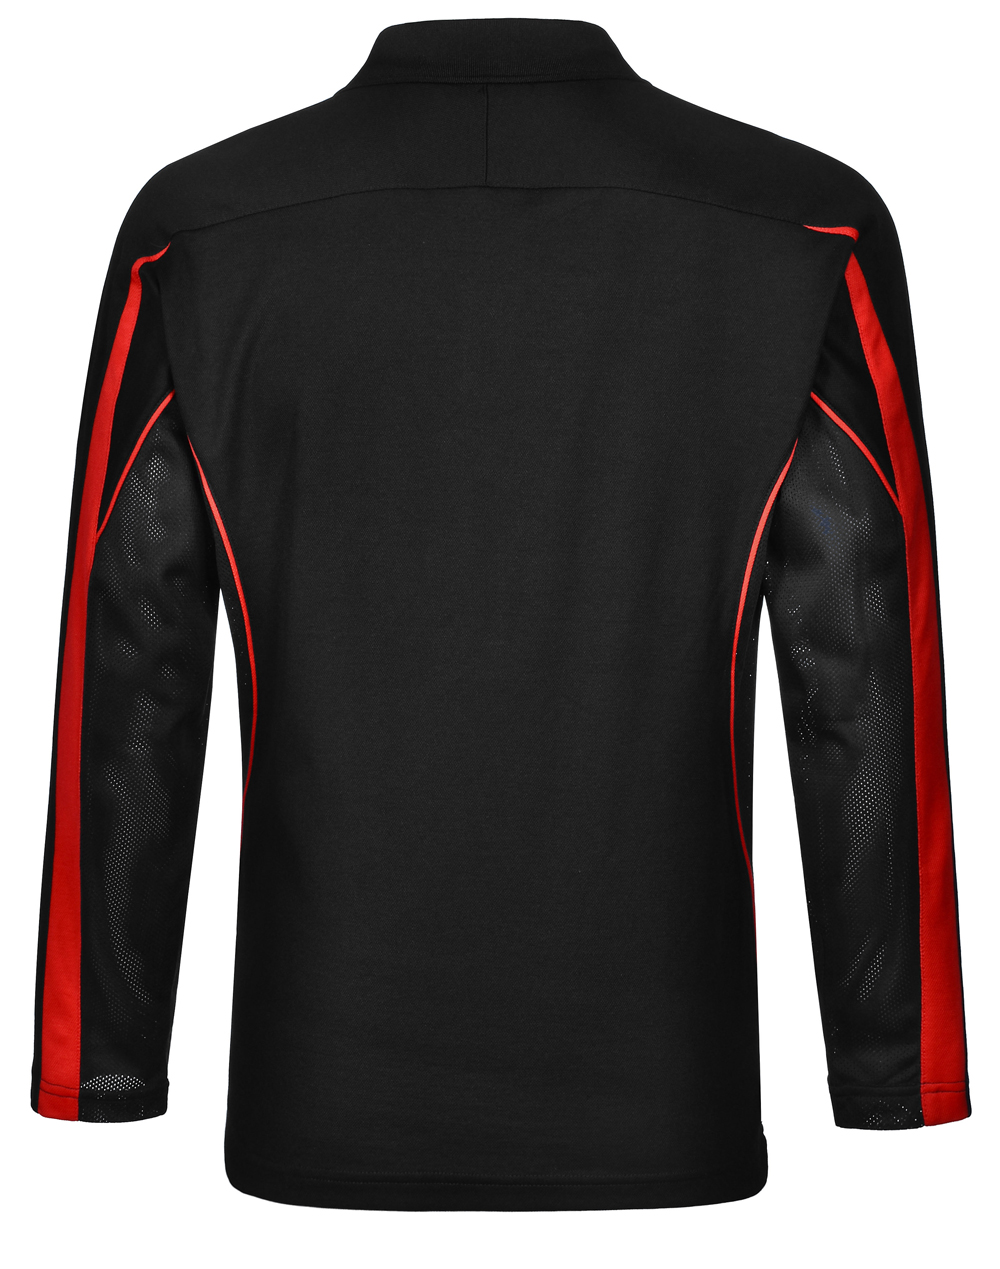 https://s3-ap-southeast-1.amazonaws.com/ws-imgs/POLOSHIRTS/PS69_BlackRed_Back_l.jpg